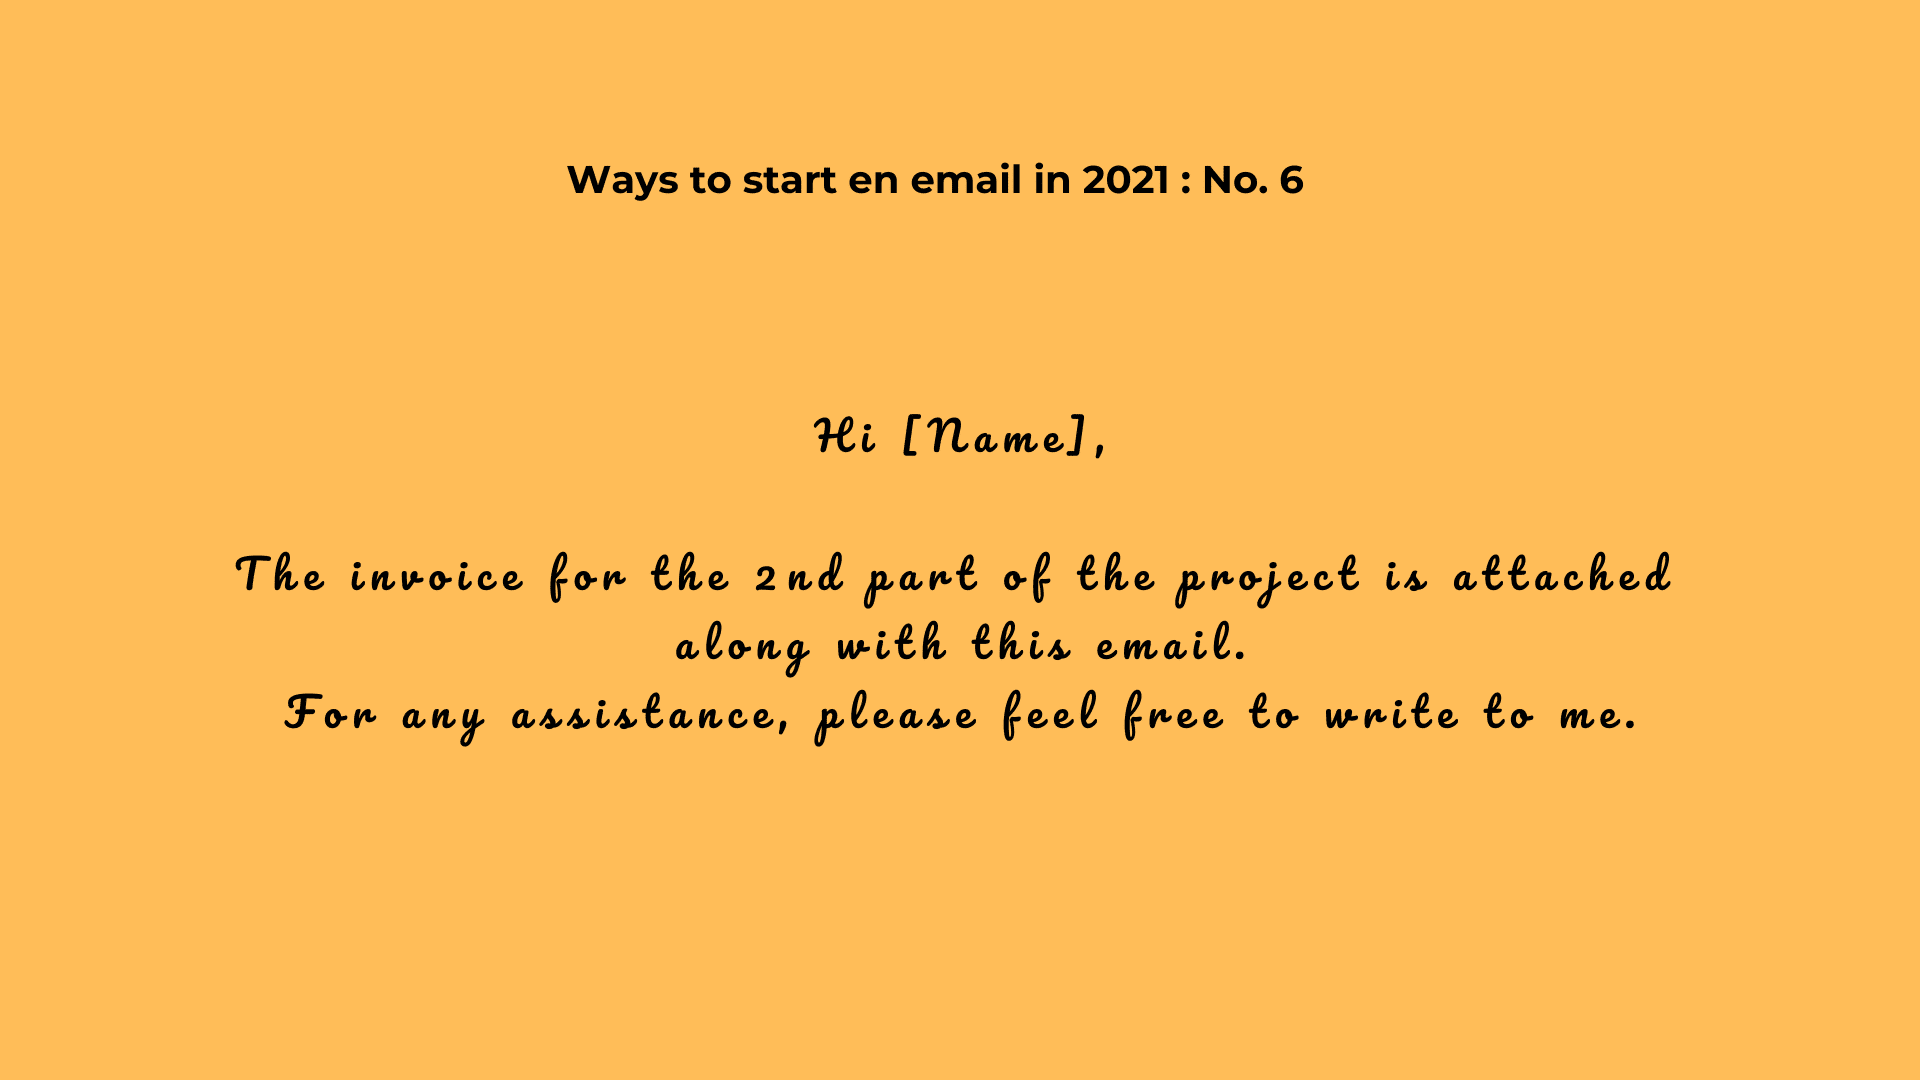 email-starting-lines-that-work-way-6